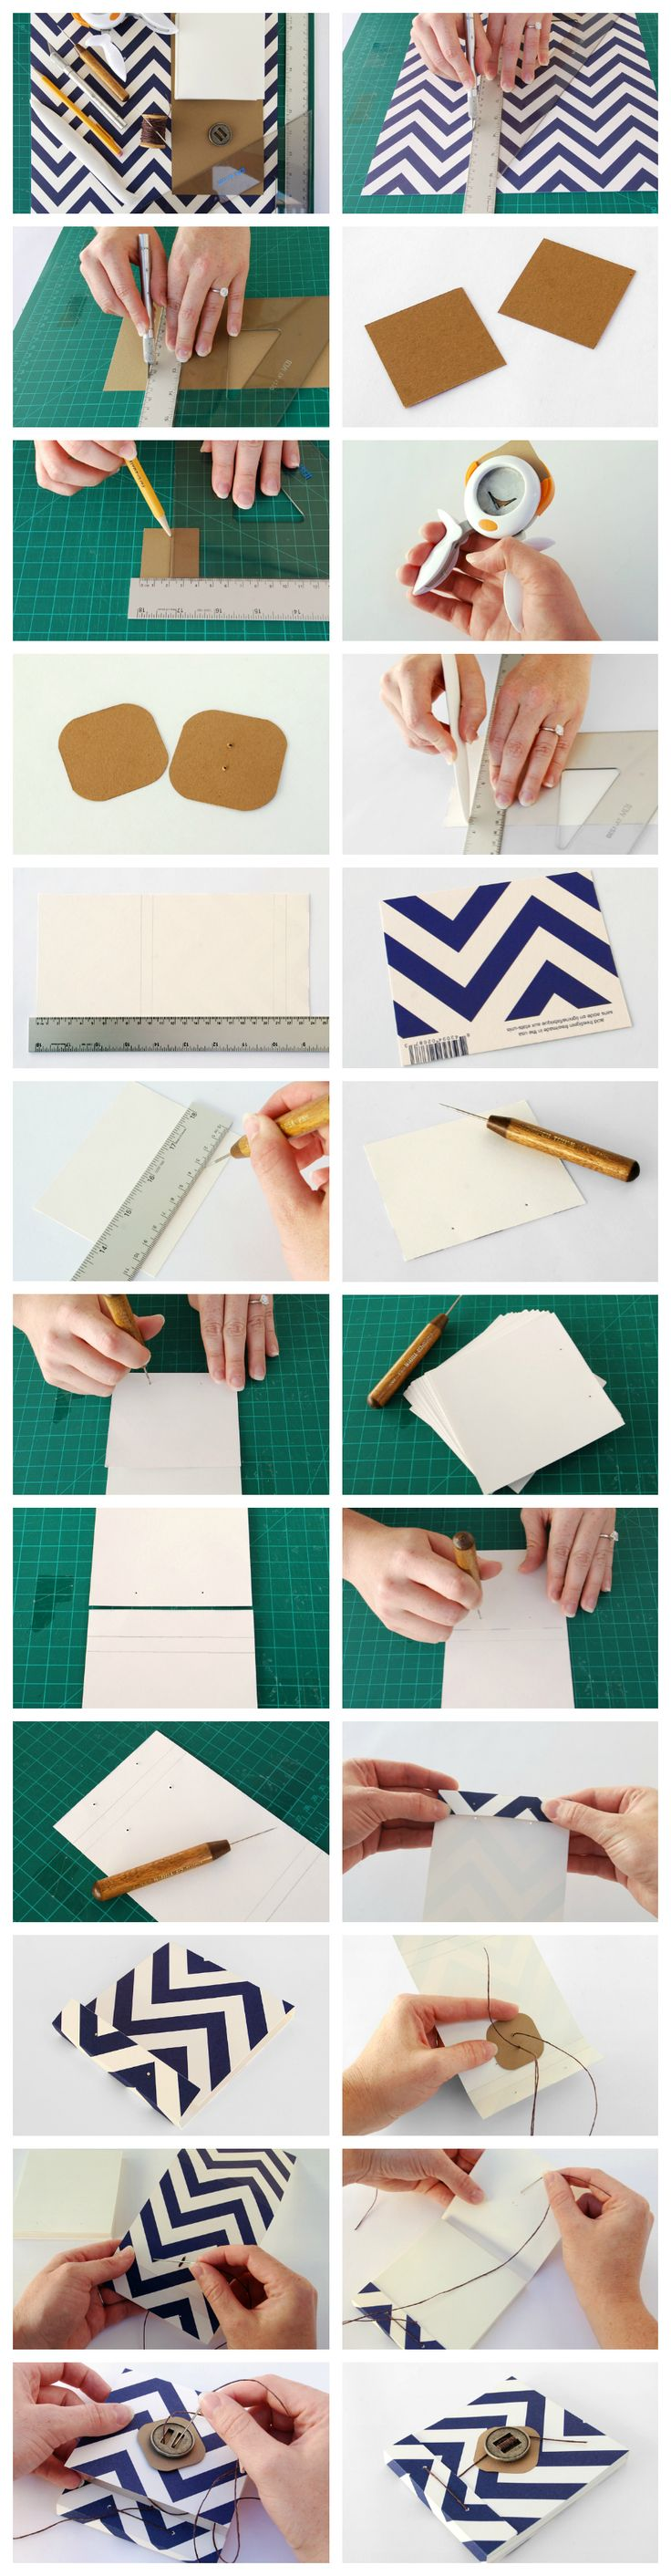 Easy bookbinding tutorial: How to make a gorgeous matchbook-style notebook via craft.tutsplus.com